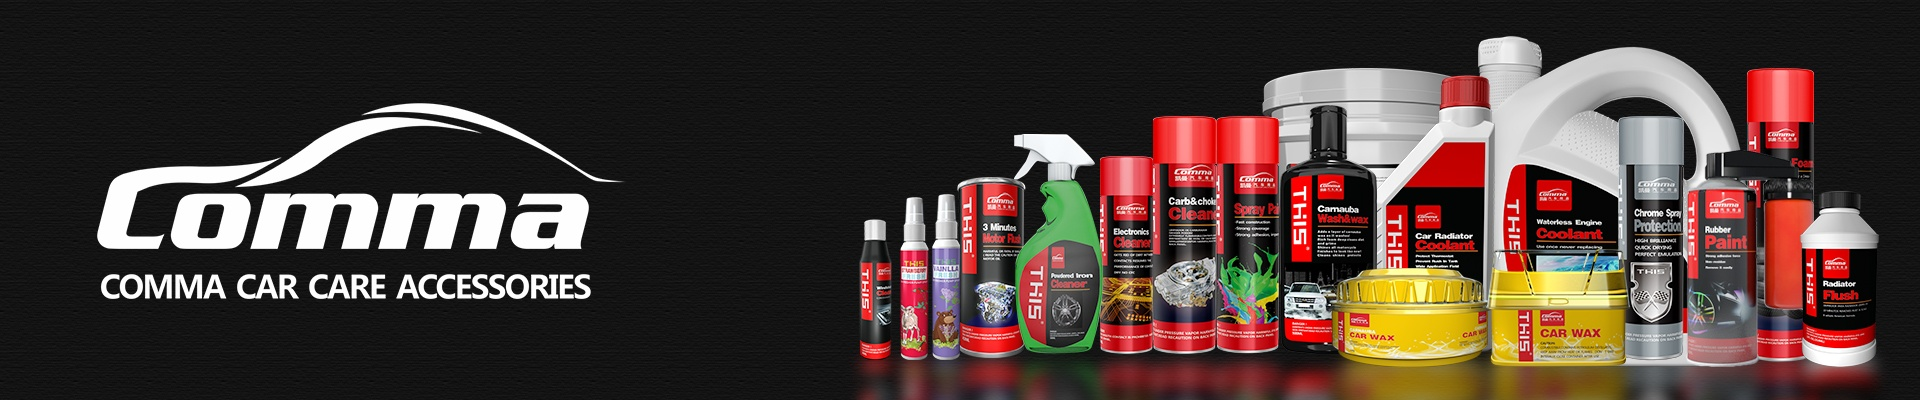 Comma Car Detailing Products